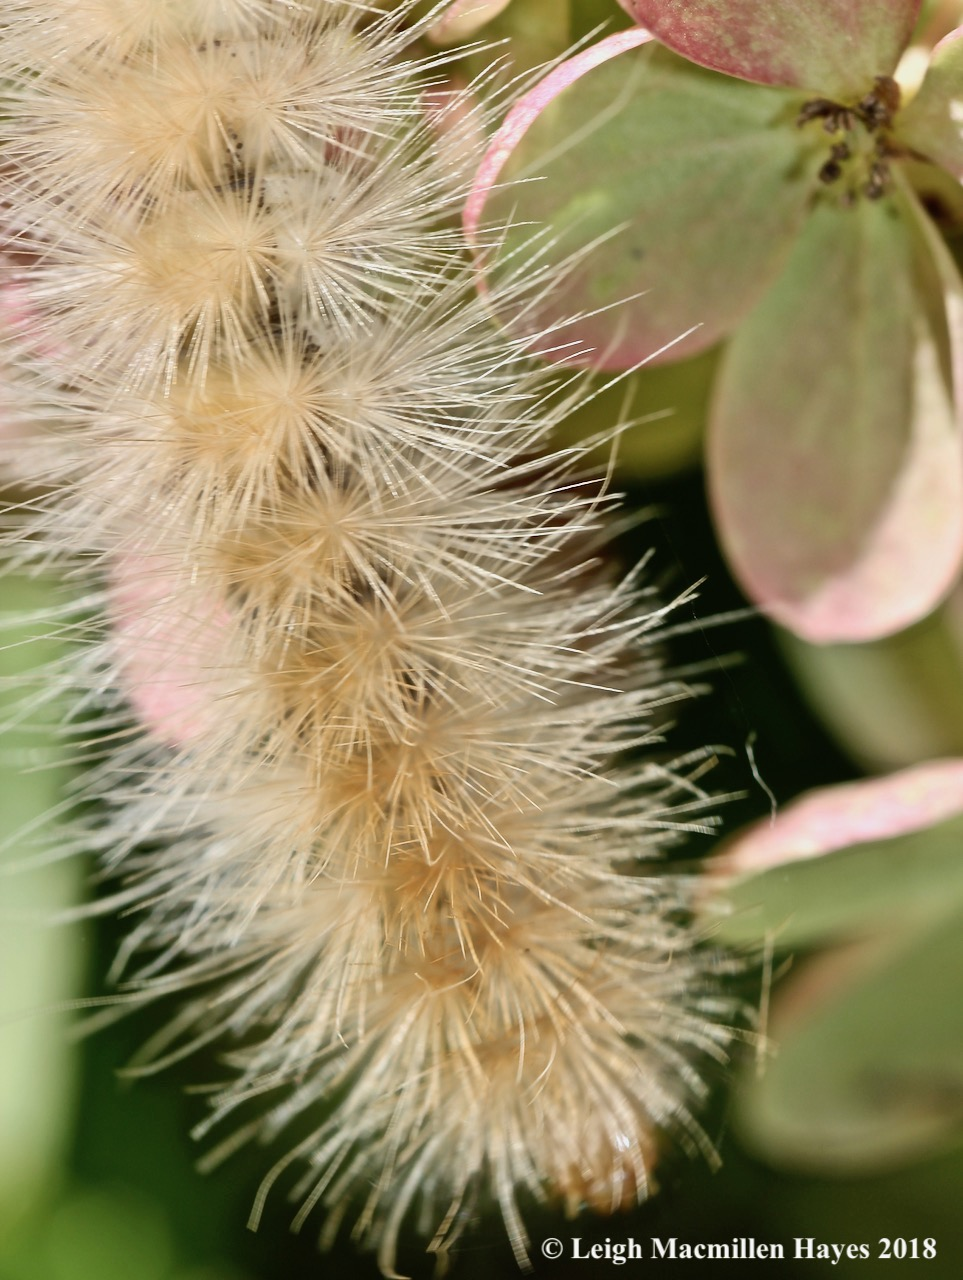 4-Tiger Moth Caterpillar